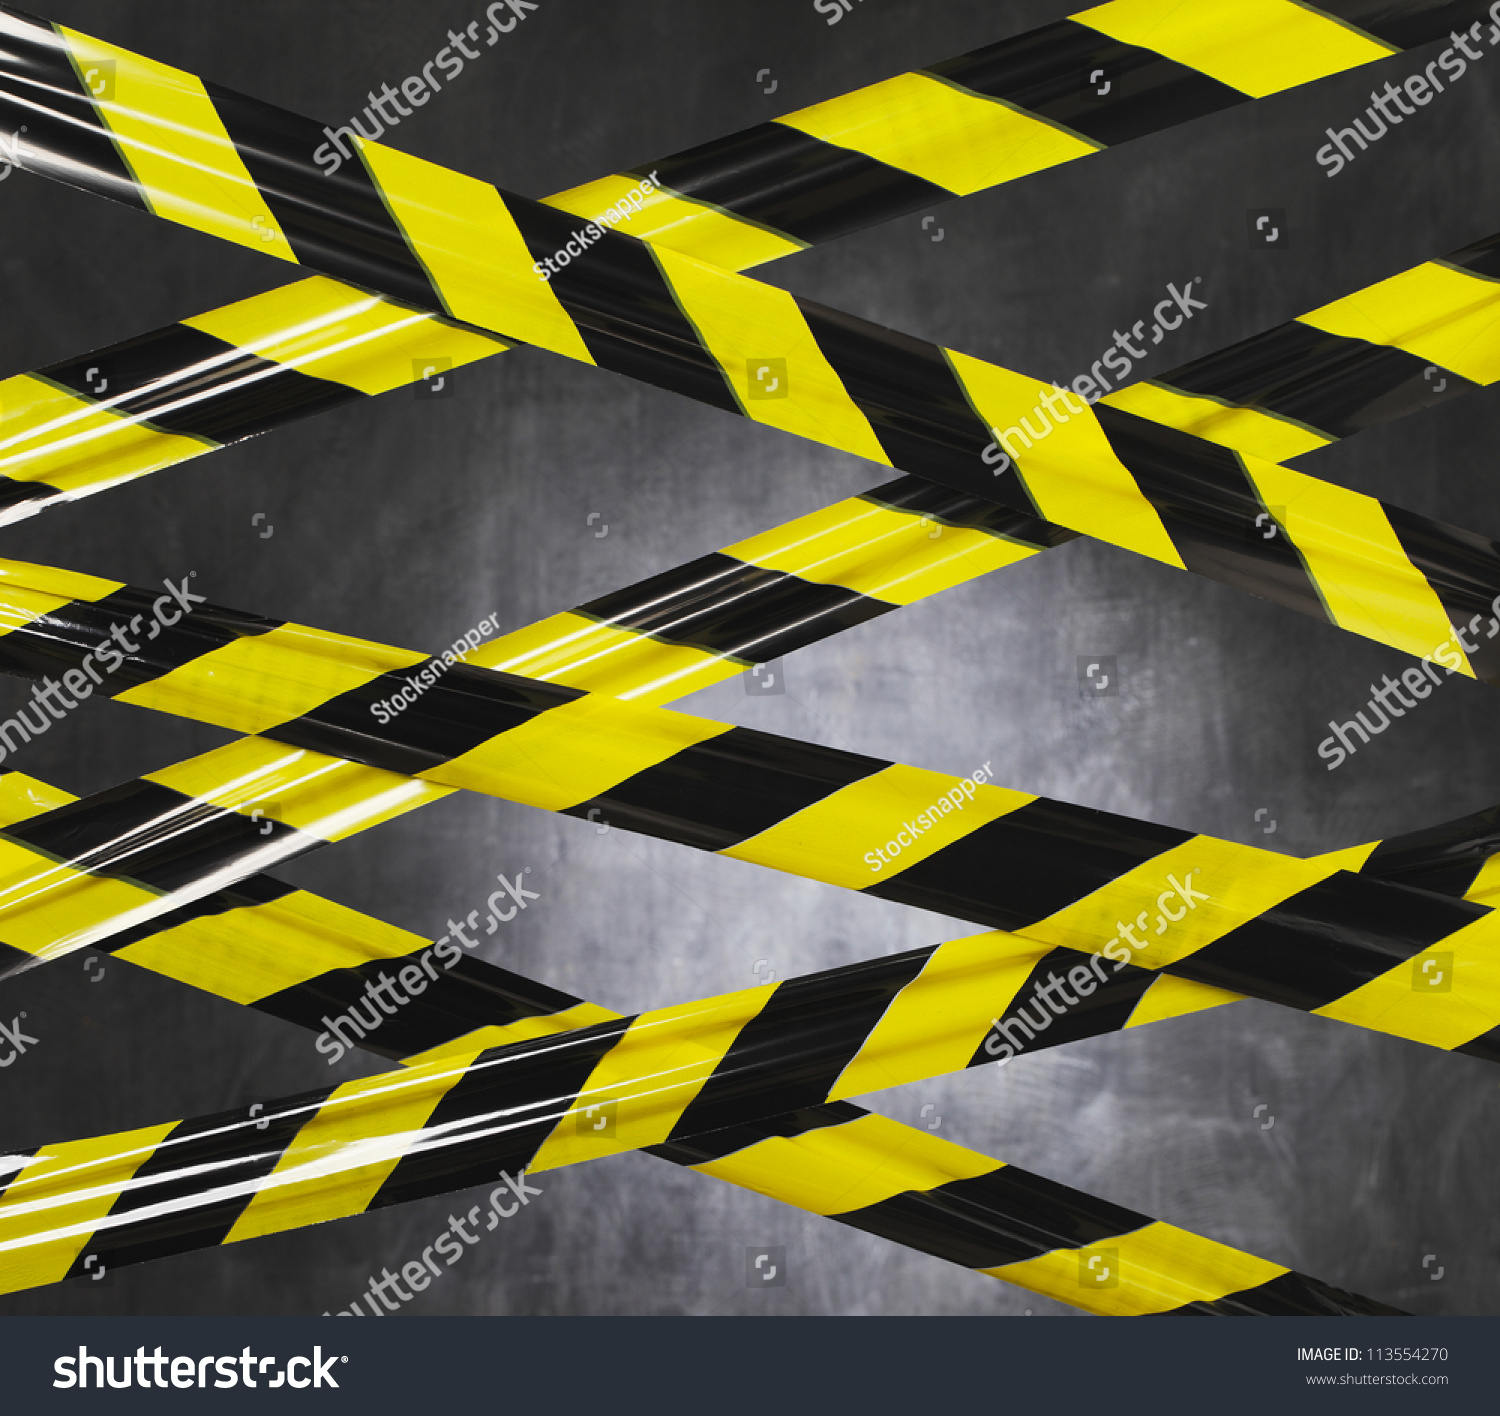 Off white diagonal striped plastic texture picture free photograph - Black And Yellow Plastic Barrier Tape Blocking The Way